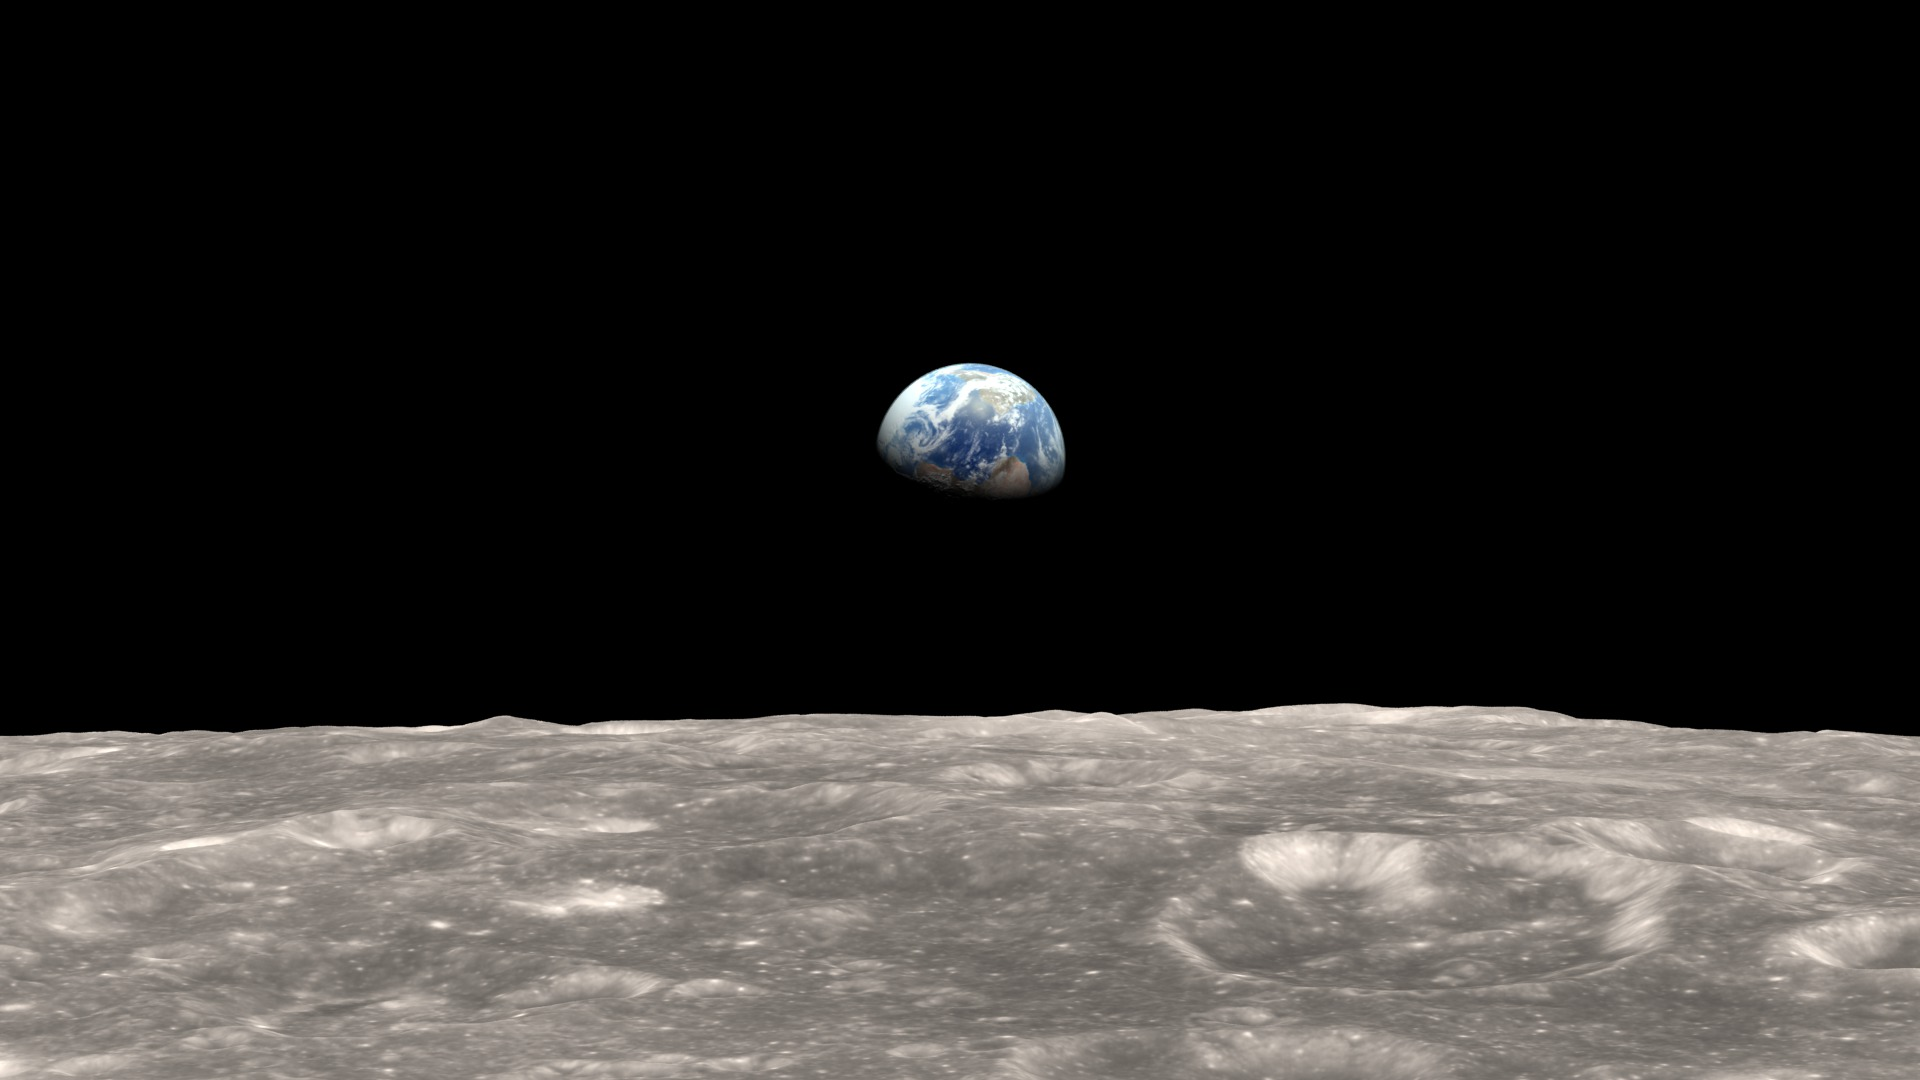 https://svs.gsfc.nasa.gov/vis/a000000/a004100/a004129/earthrise.2400.jpg